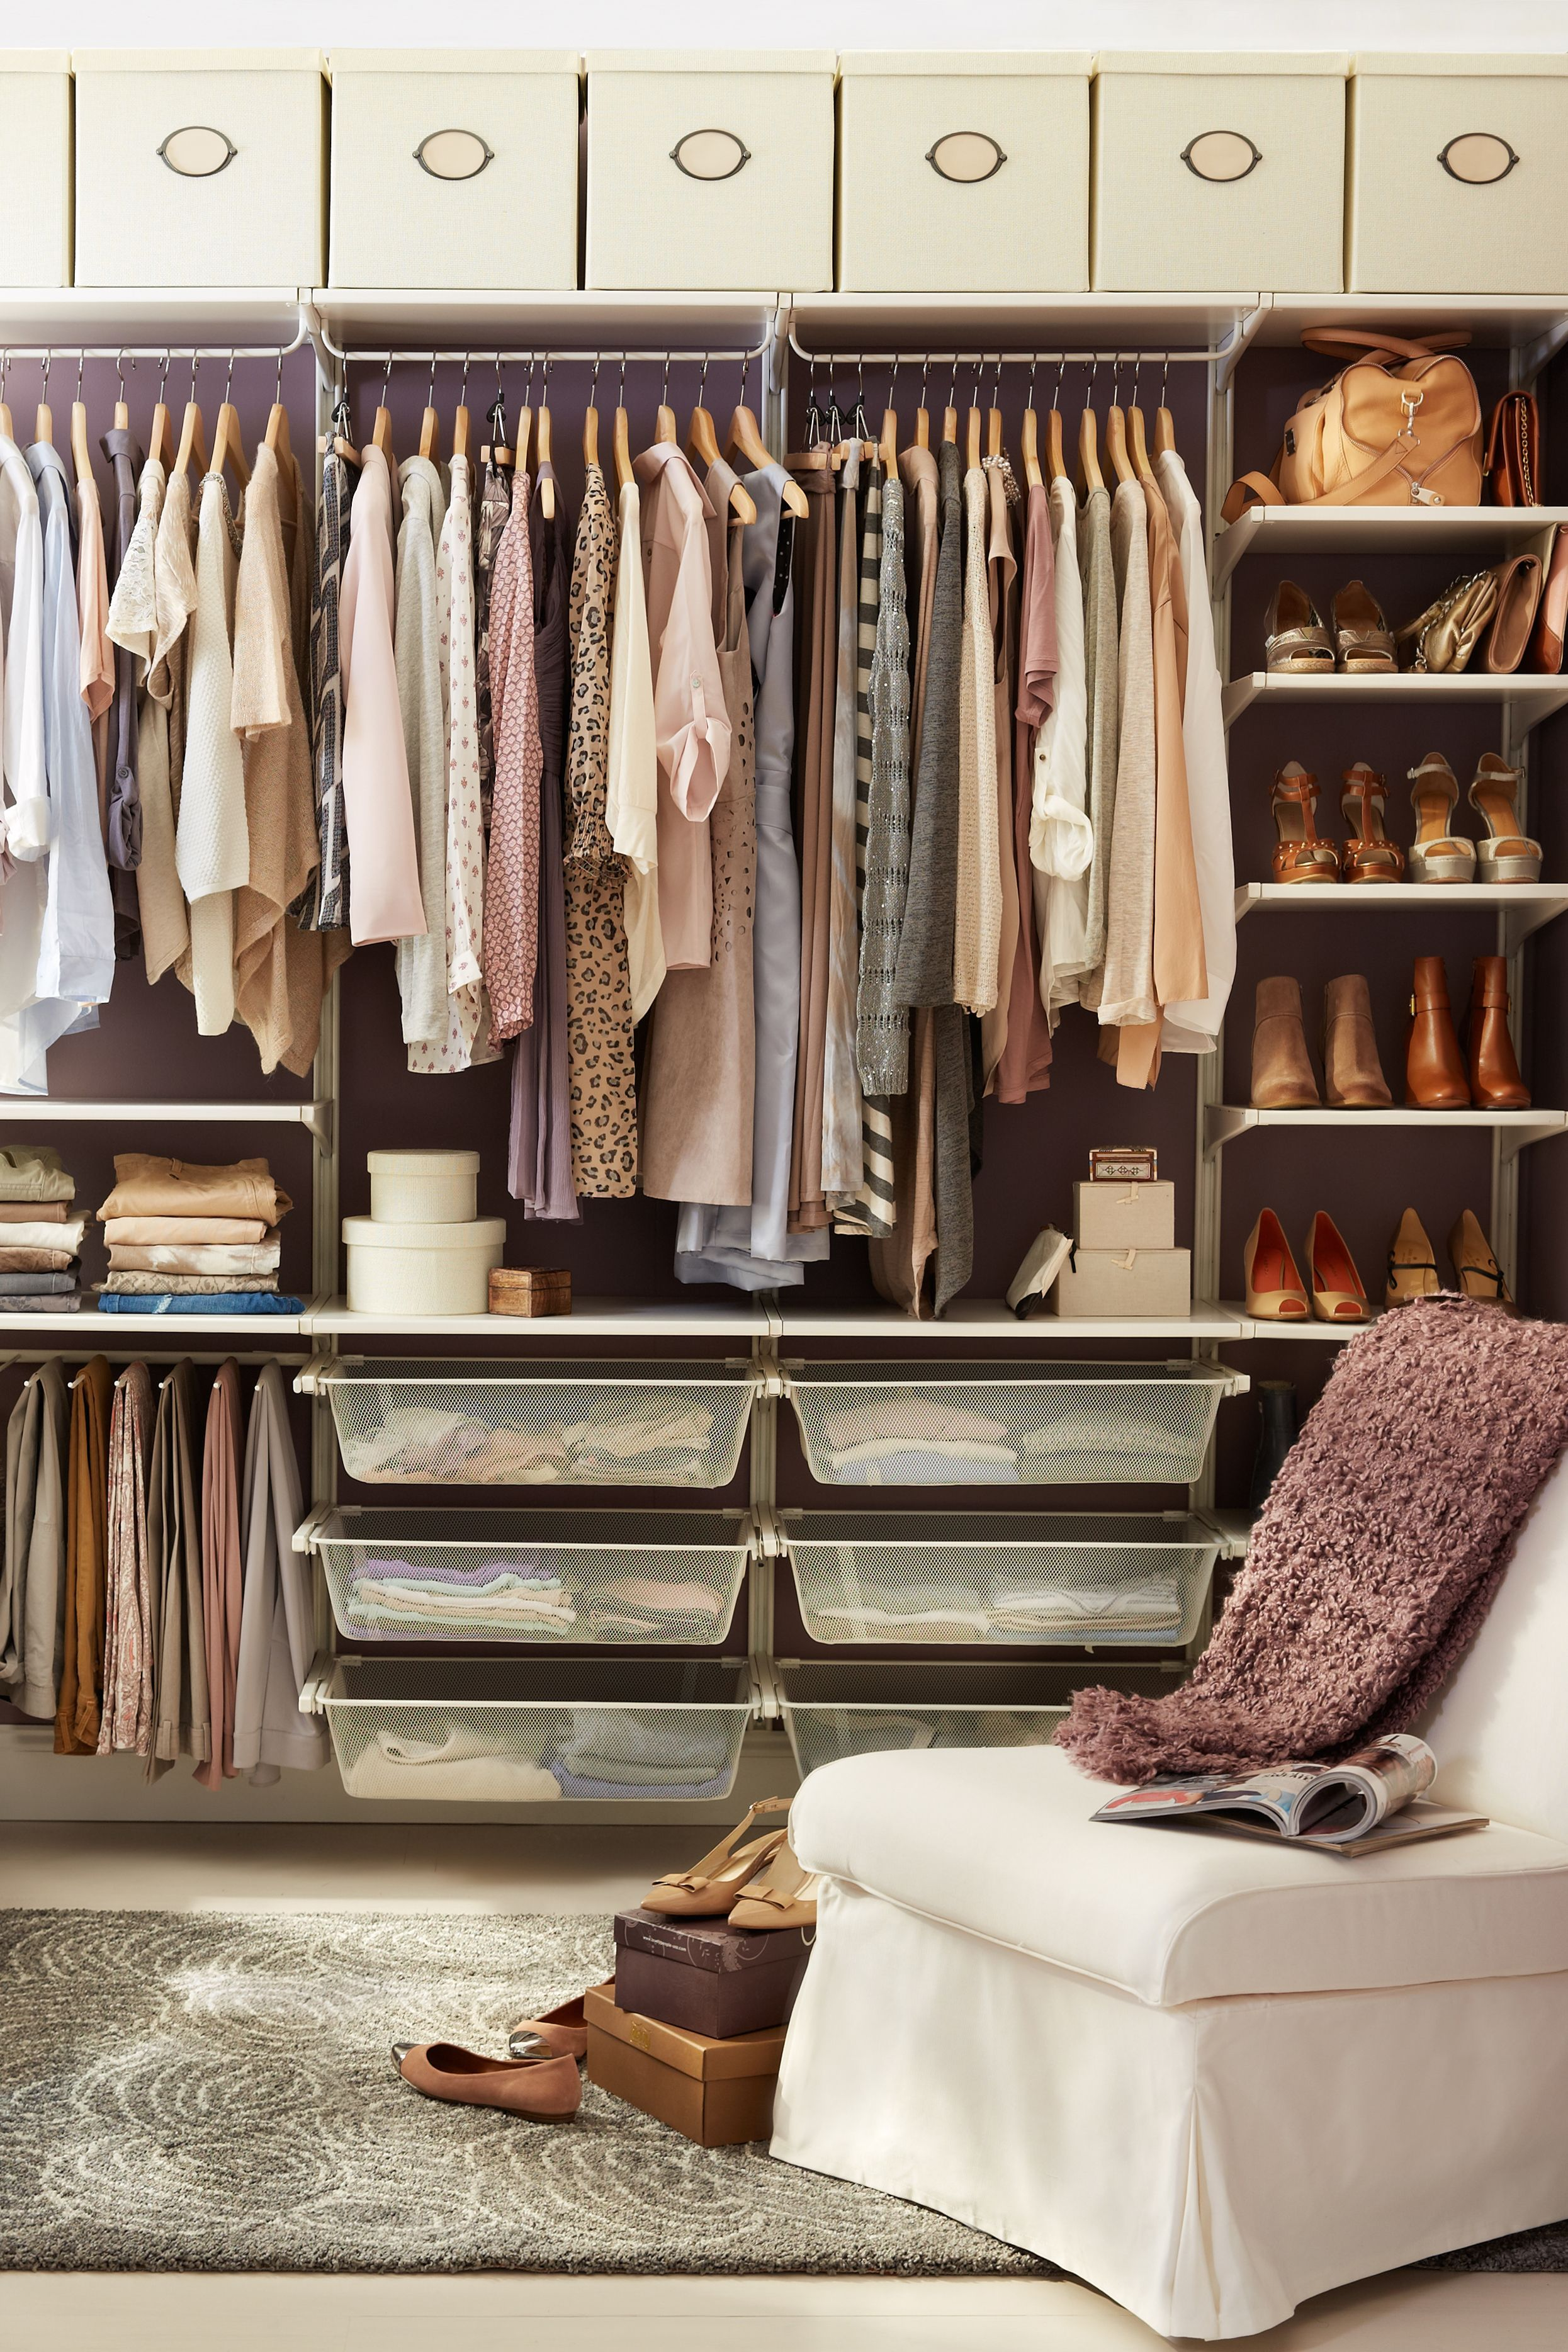 The Perfect Place For A Fresh Start Bedroom Organization The